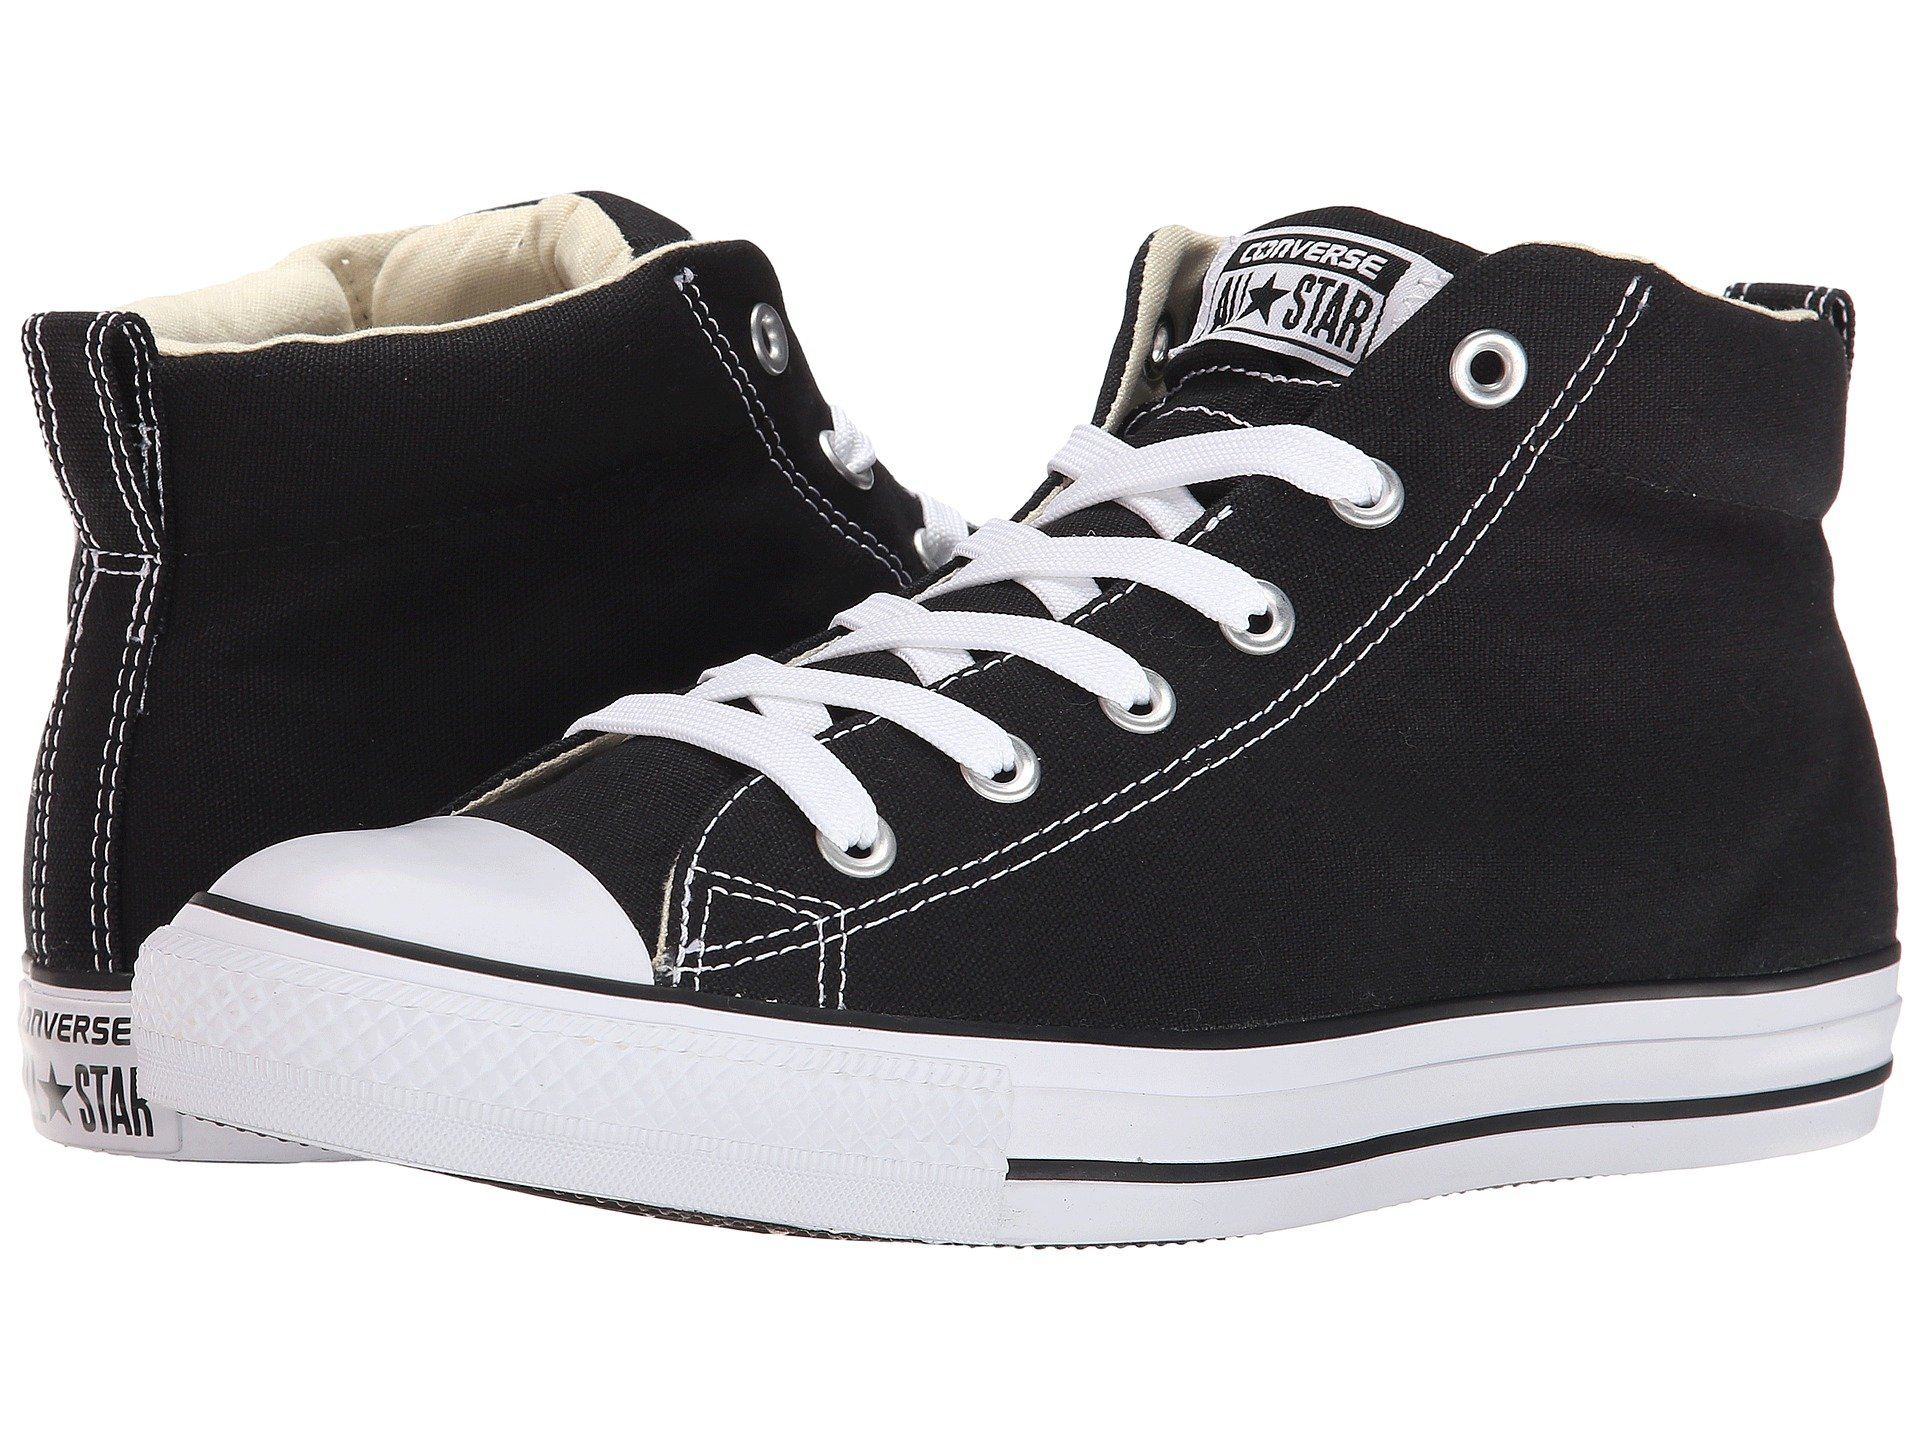 8c098905cf83 Men s Converse Sneakers   Athletic Shoes + FREE SHIPPING